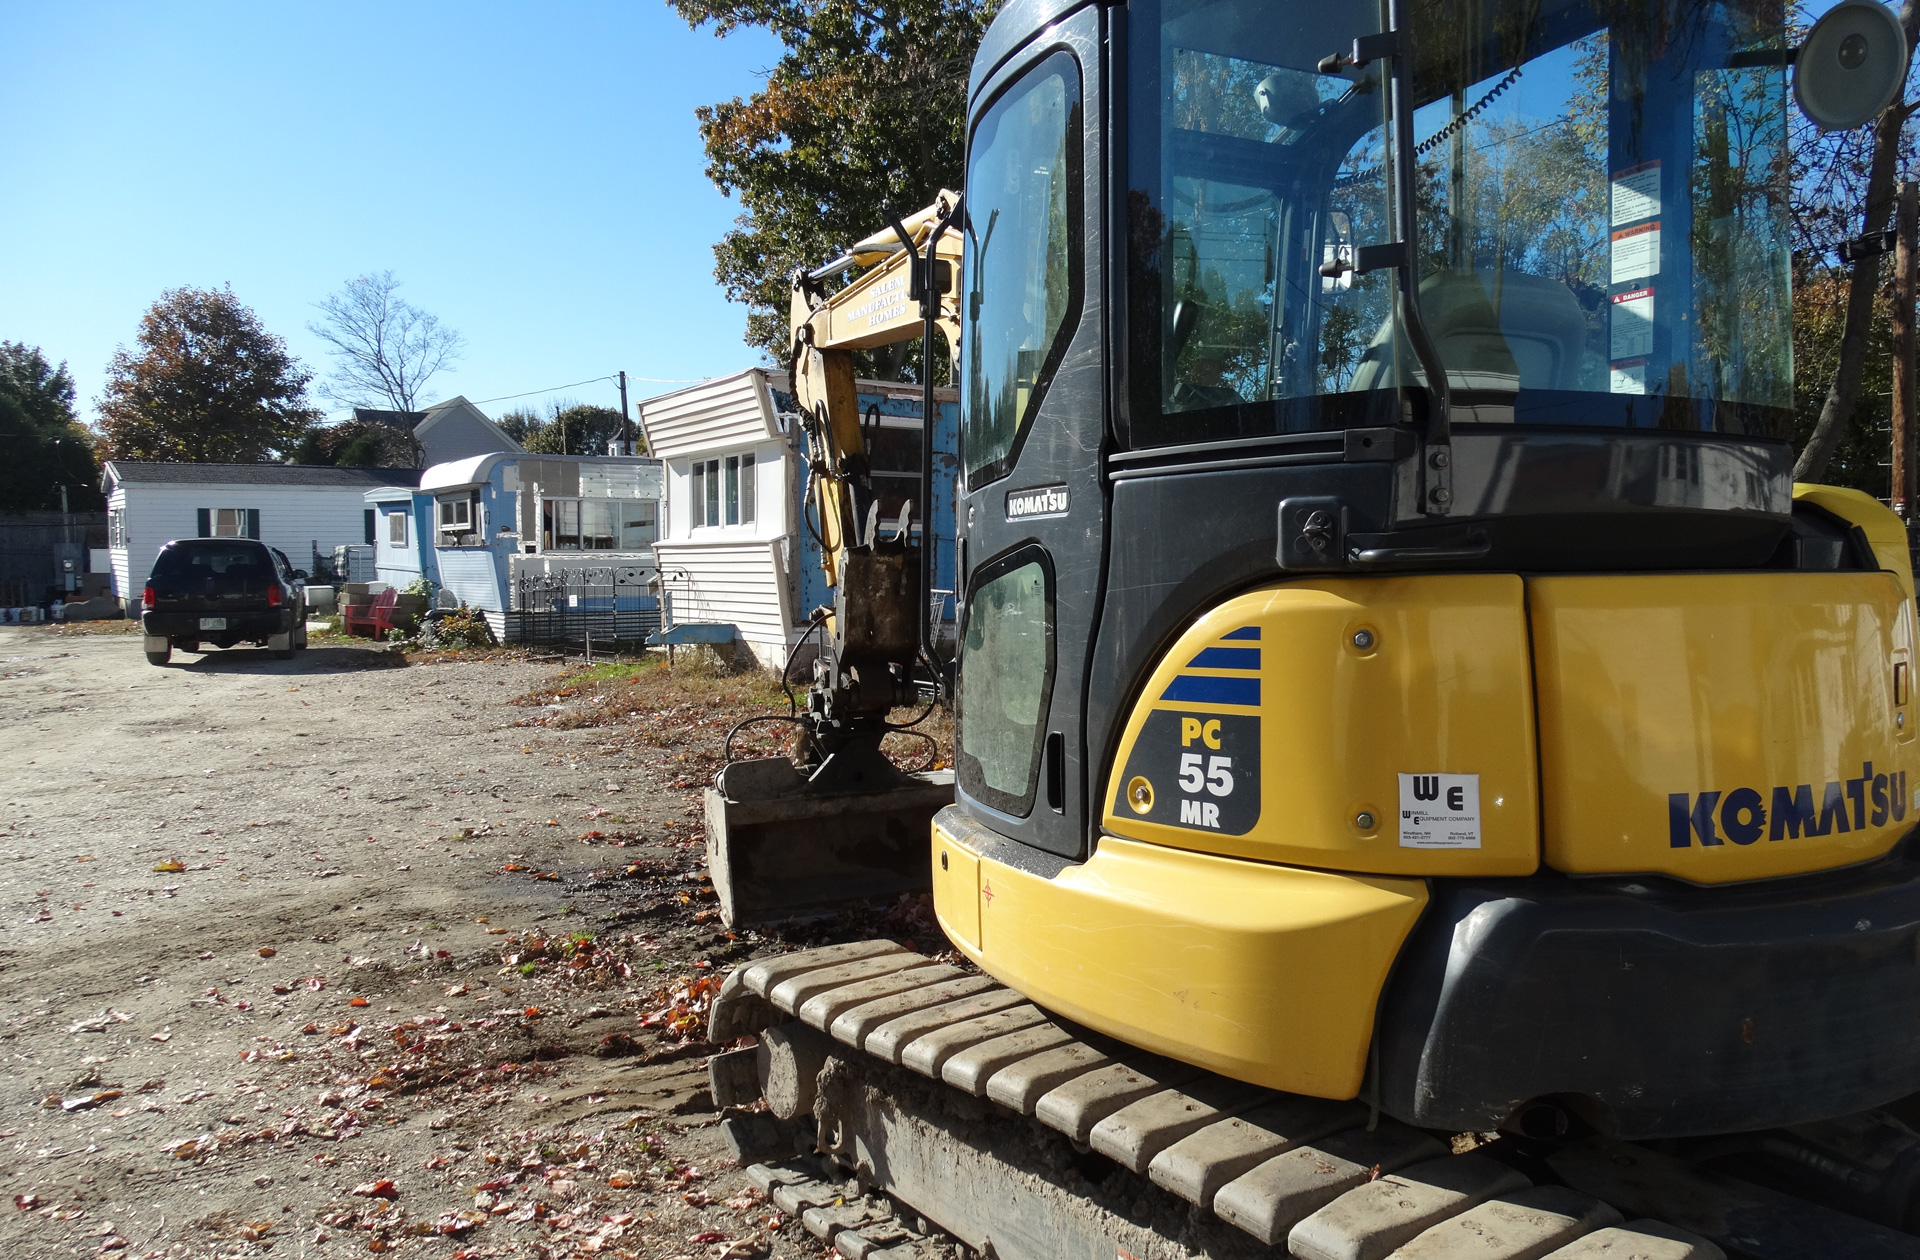 Construction equipment in a resident-owned community